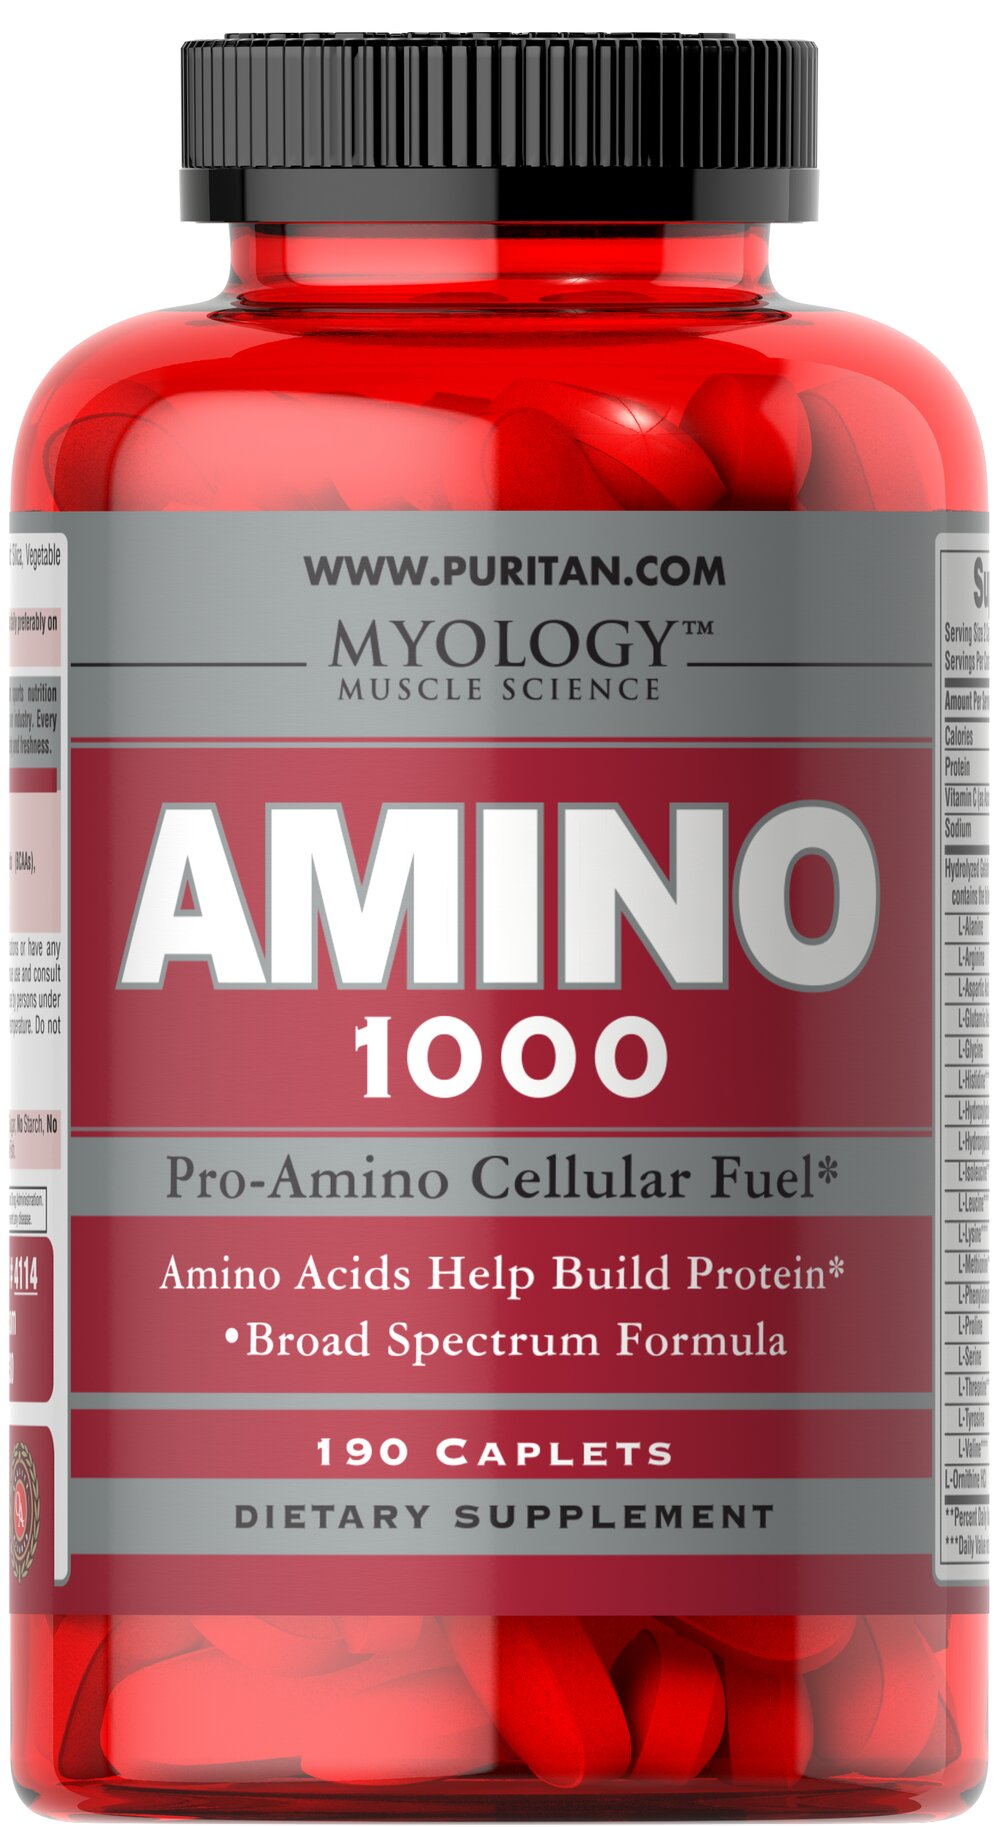 "Amino 1000 <p>This Amino Acid formula contains all three Branch Chained Amino Acids (BCAAs), as well as other essential Aminos.  Amino Acids provide crucial building blocks for protein which are the main components of muscle tissue.** Product includes: <span style=""font-size:11.0pt;font-family:'Calibri','sans-serif';"">424mg of Glycine, 30mg of Ornithine, 140mg of Arginine and 60mg of Lysine</span><br /></p> 190 Caplets 1000 mg $16.99"